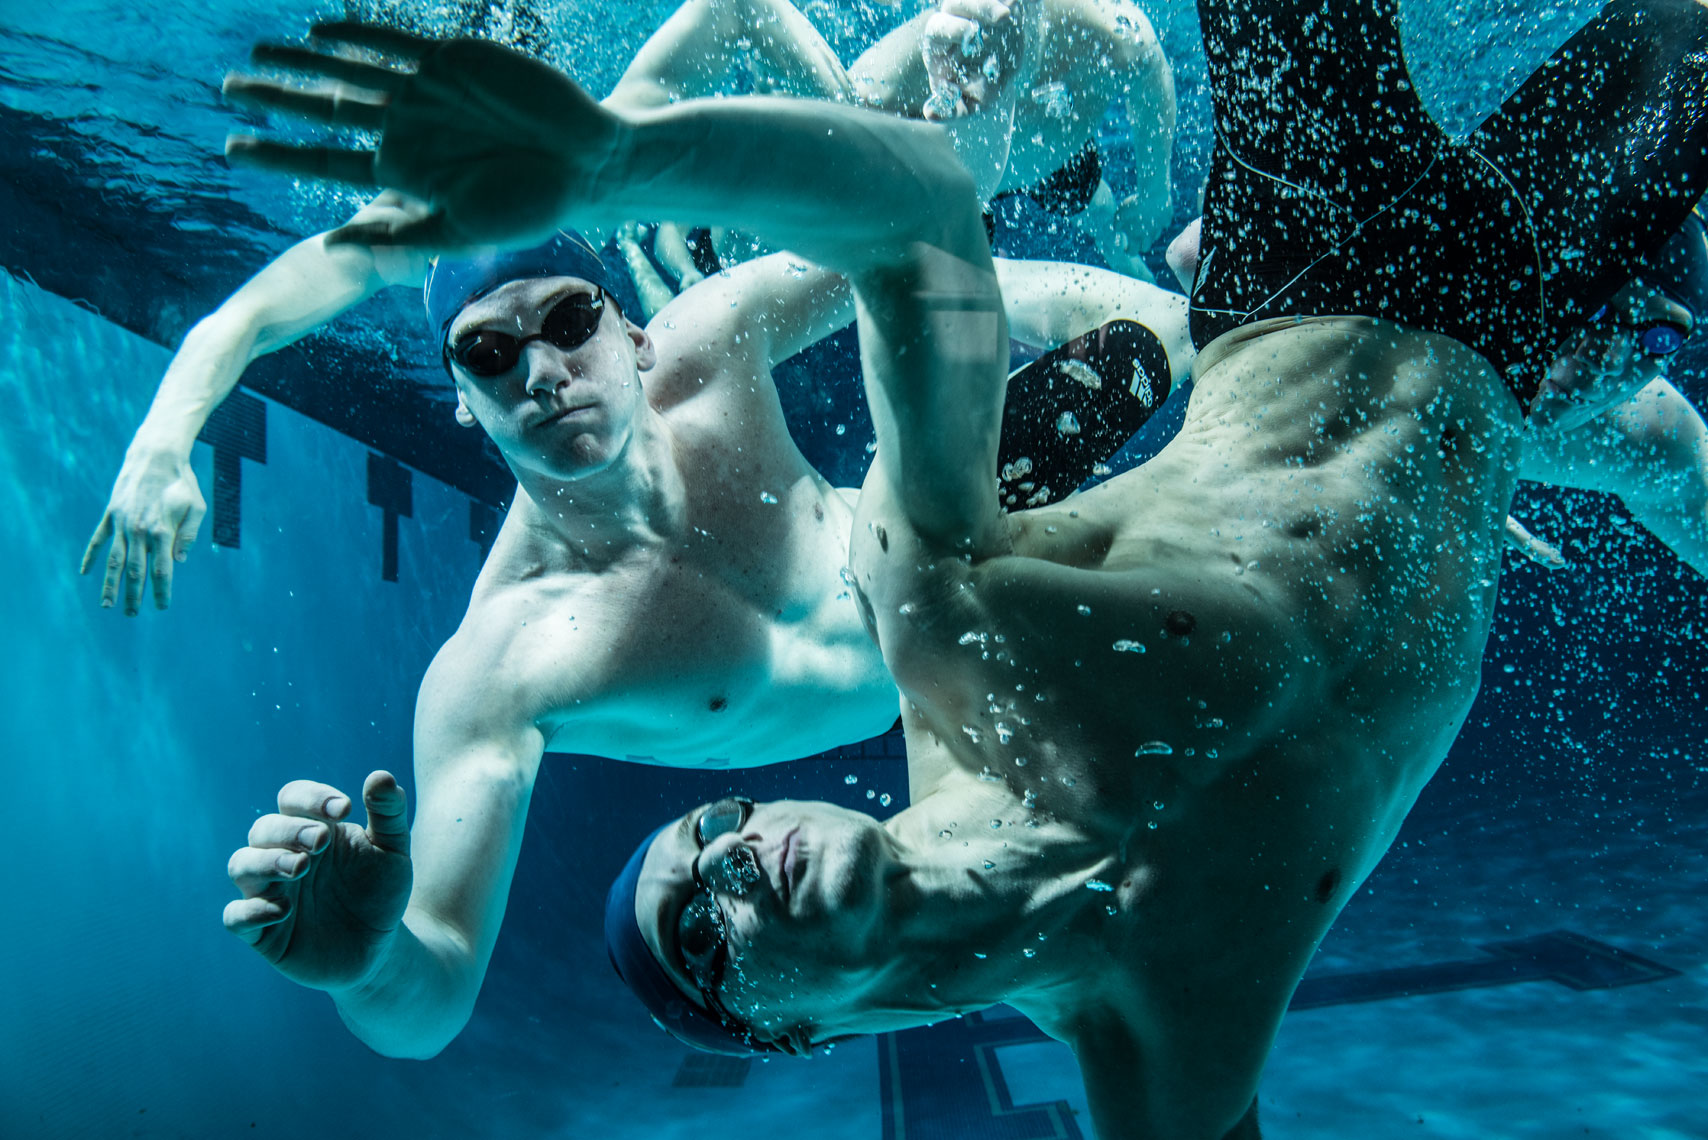 College swimmers underwater in the pool